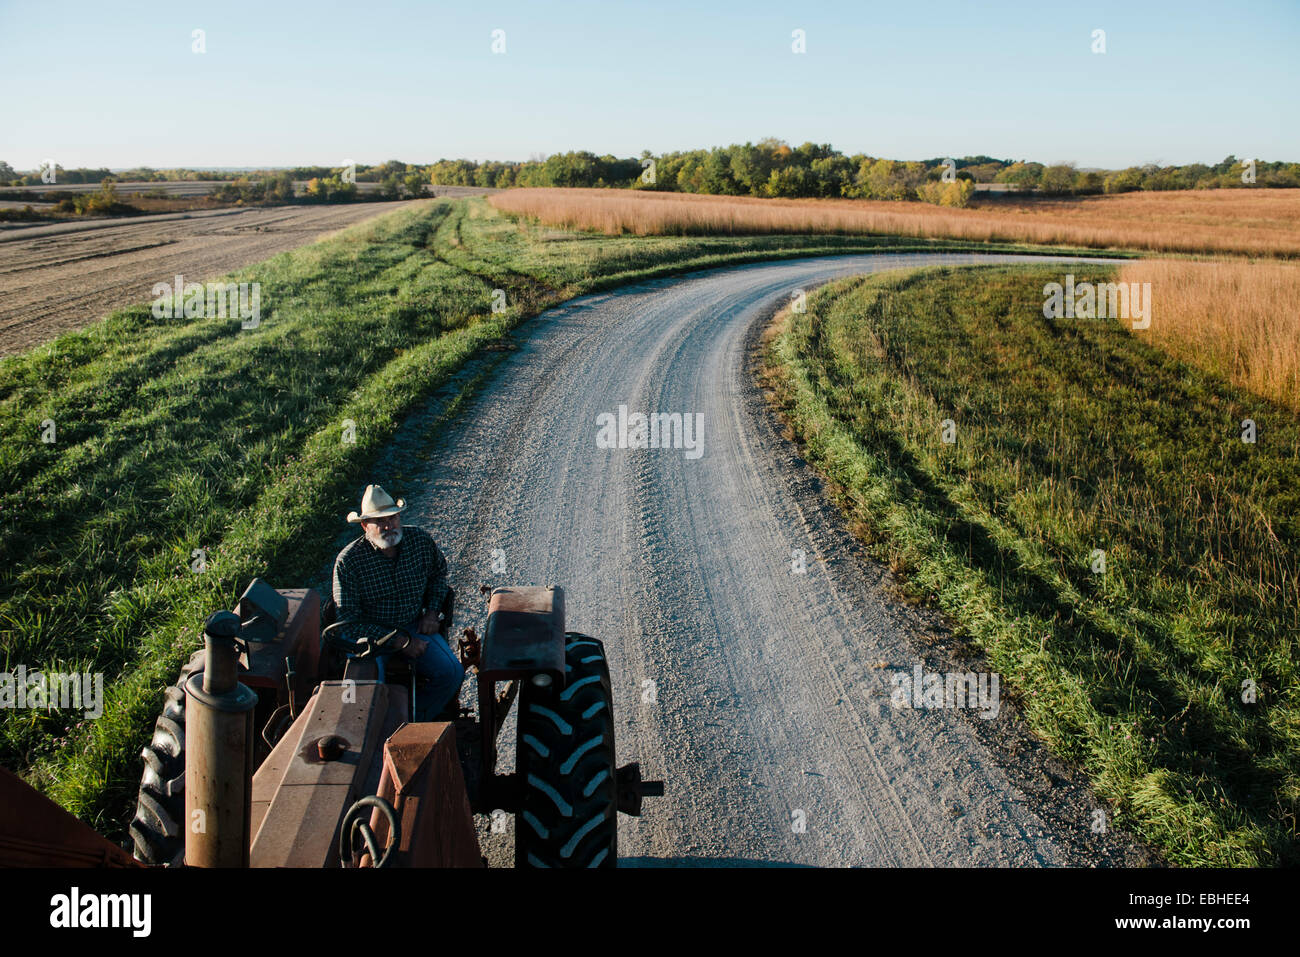 High angle view of senior, agriculteur de la conduite du tracteur sur la route rurale, Plattsburg, New York, USA Photo Stock